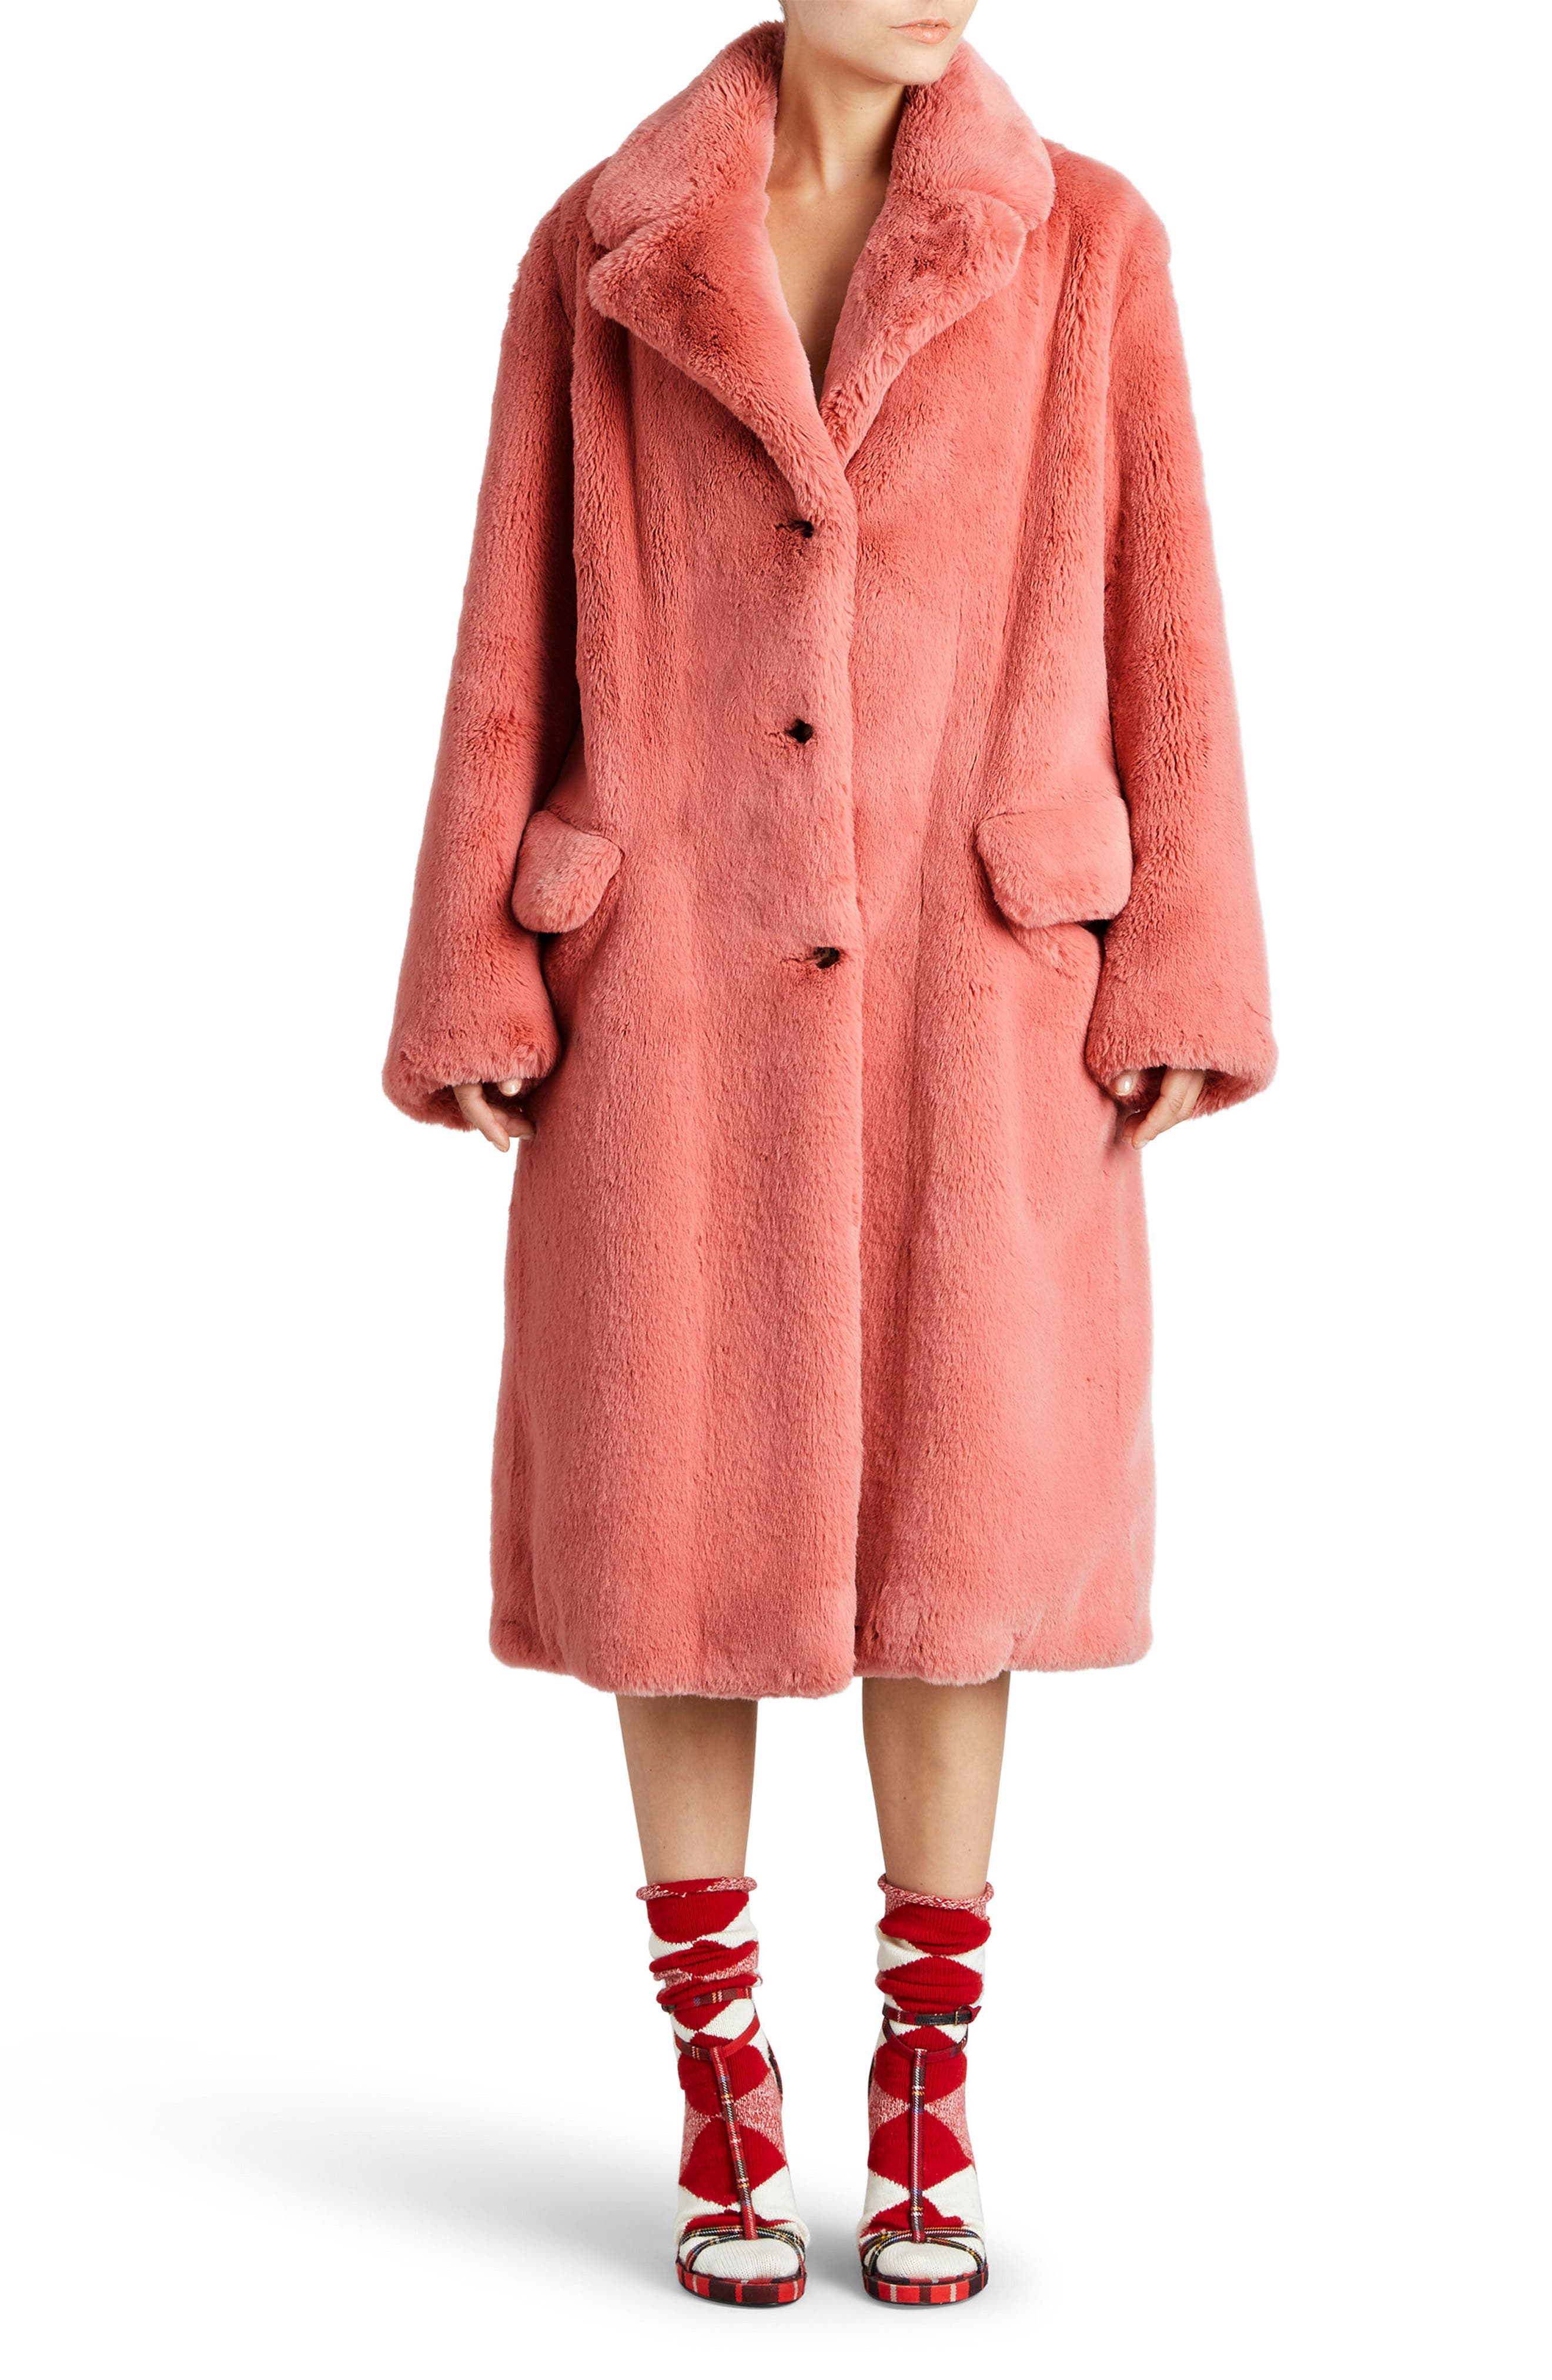 Burberry Faux Fur Coat